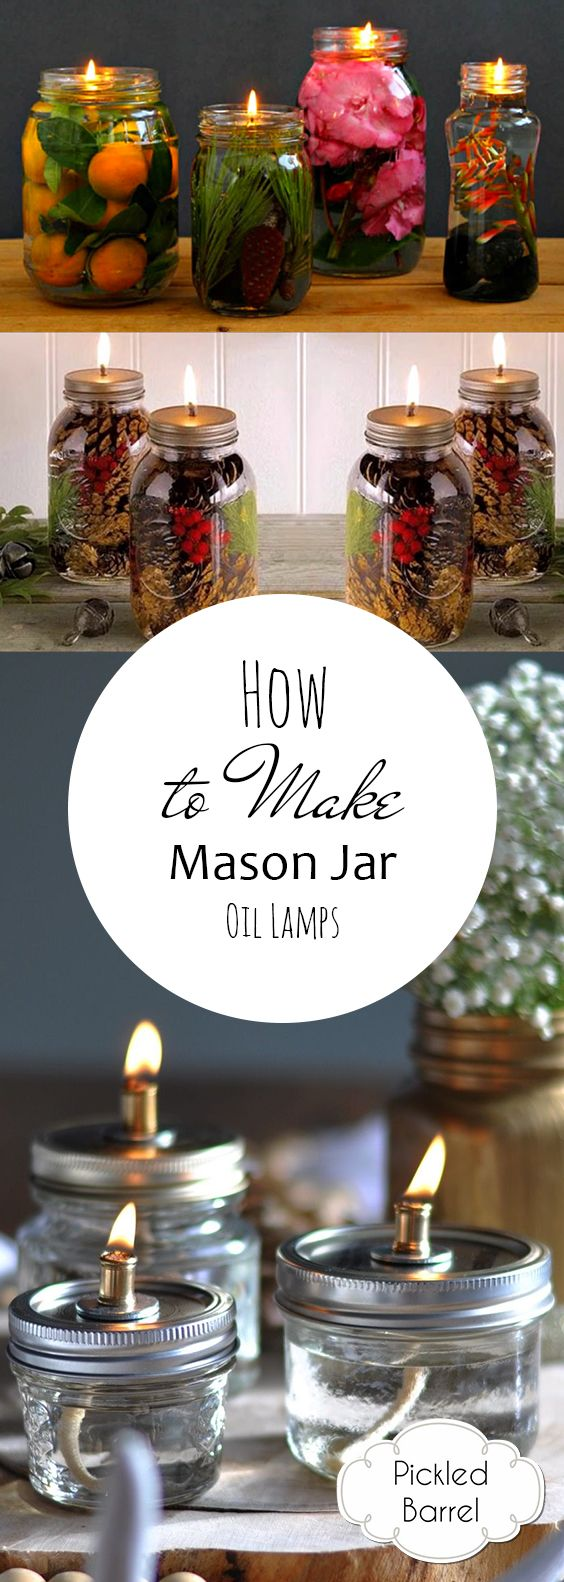 Best 25+ Oil lamps ideas on Pinterest | Jar candles with lids ...